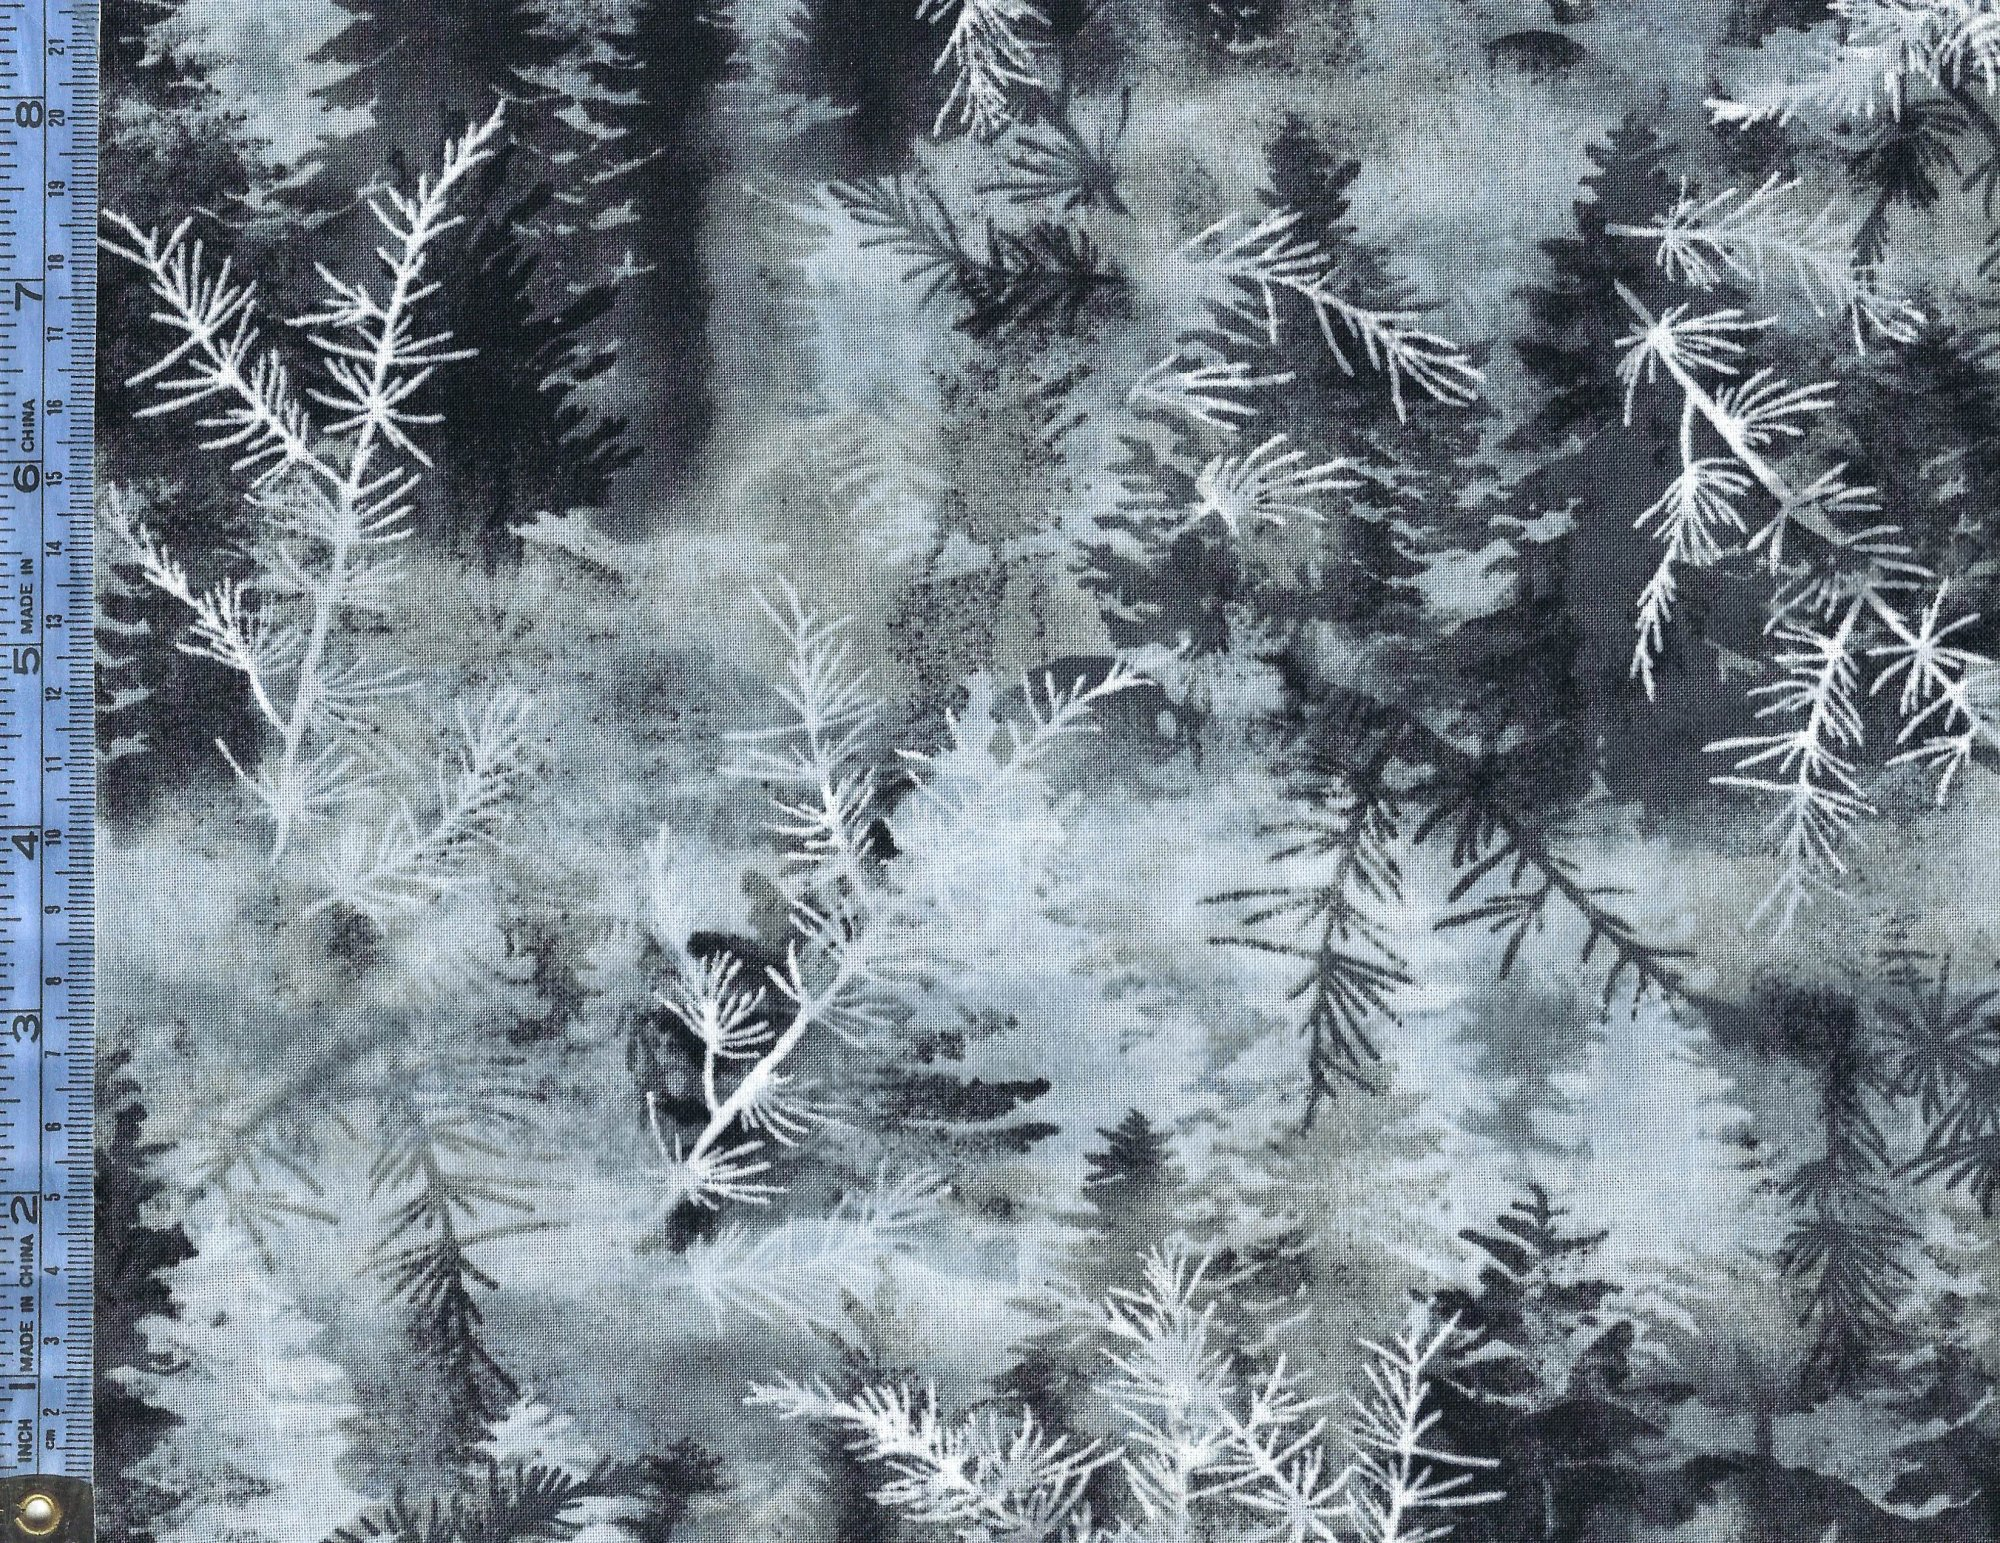 Into the Woods II - (8723-11) white and gray pine needles with pine trees